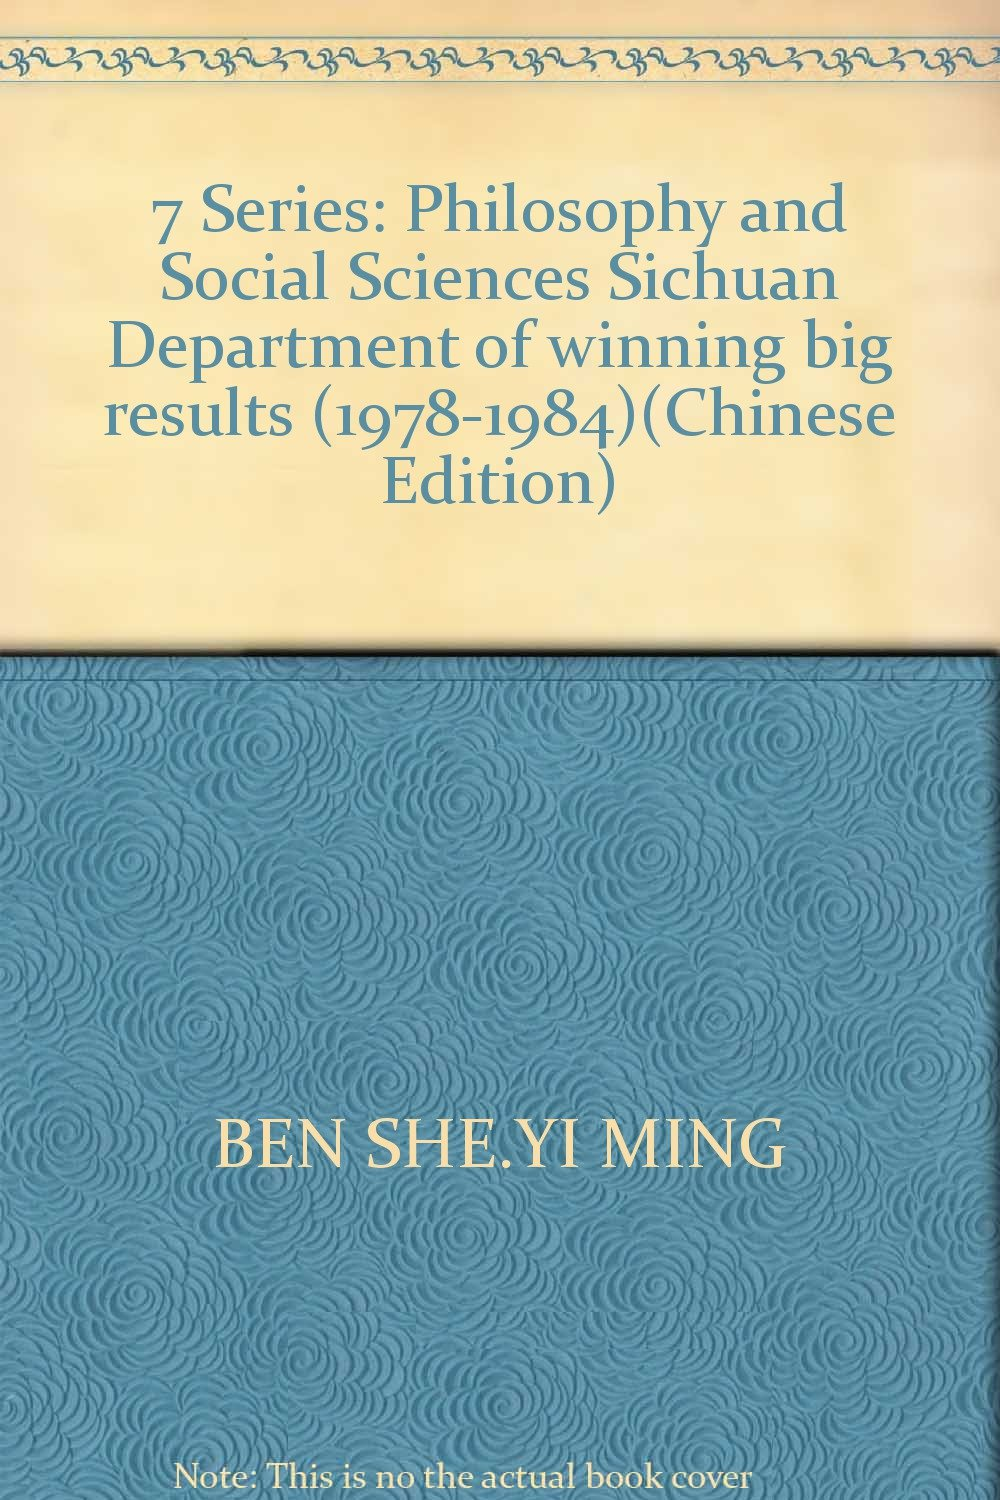 7 Series: Philosophy and Social Sciences Sichuan Department of winning big results (1978-1984)(Chinese Edition) PDF